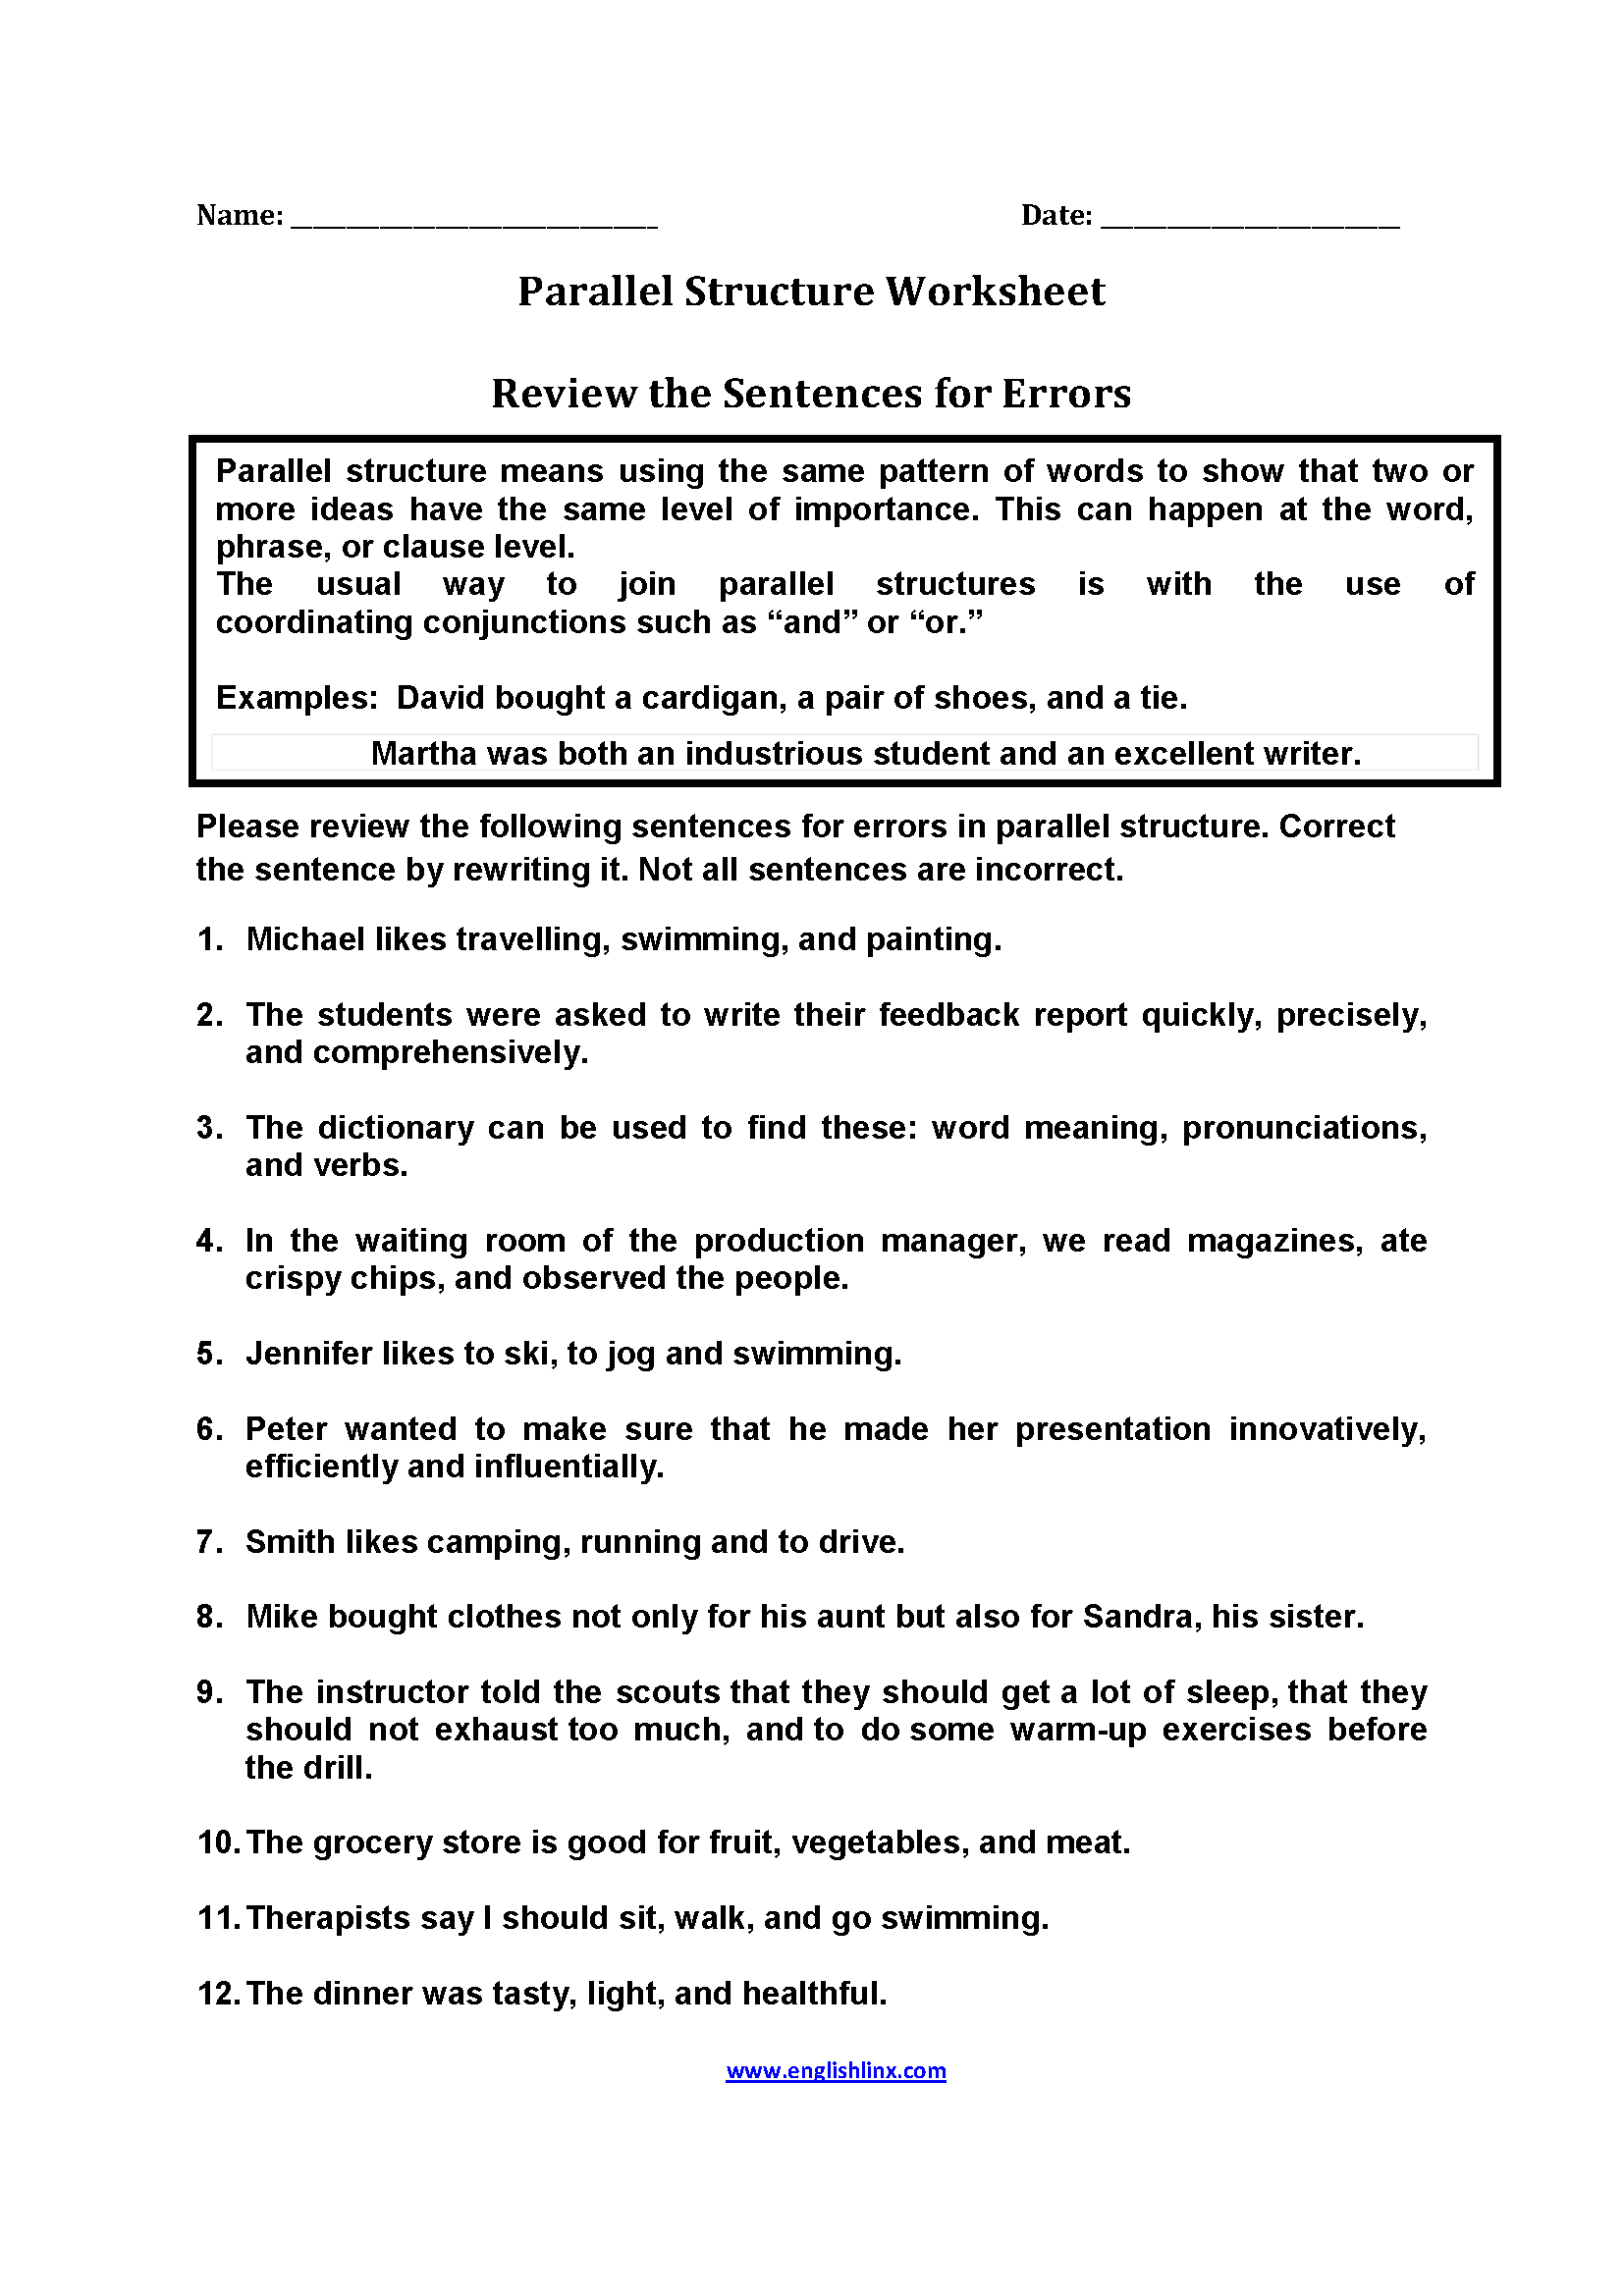 Worksheets Improving Sentence Structure Worksheets englishlinx com parallel structure worksheets review sentences for errors worksheets